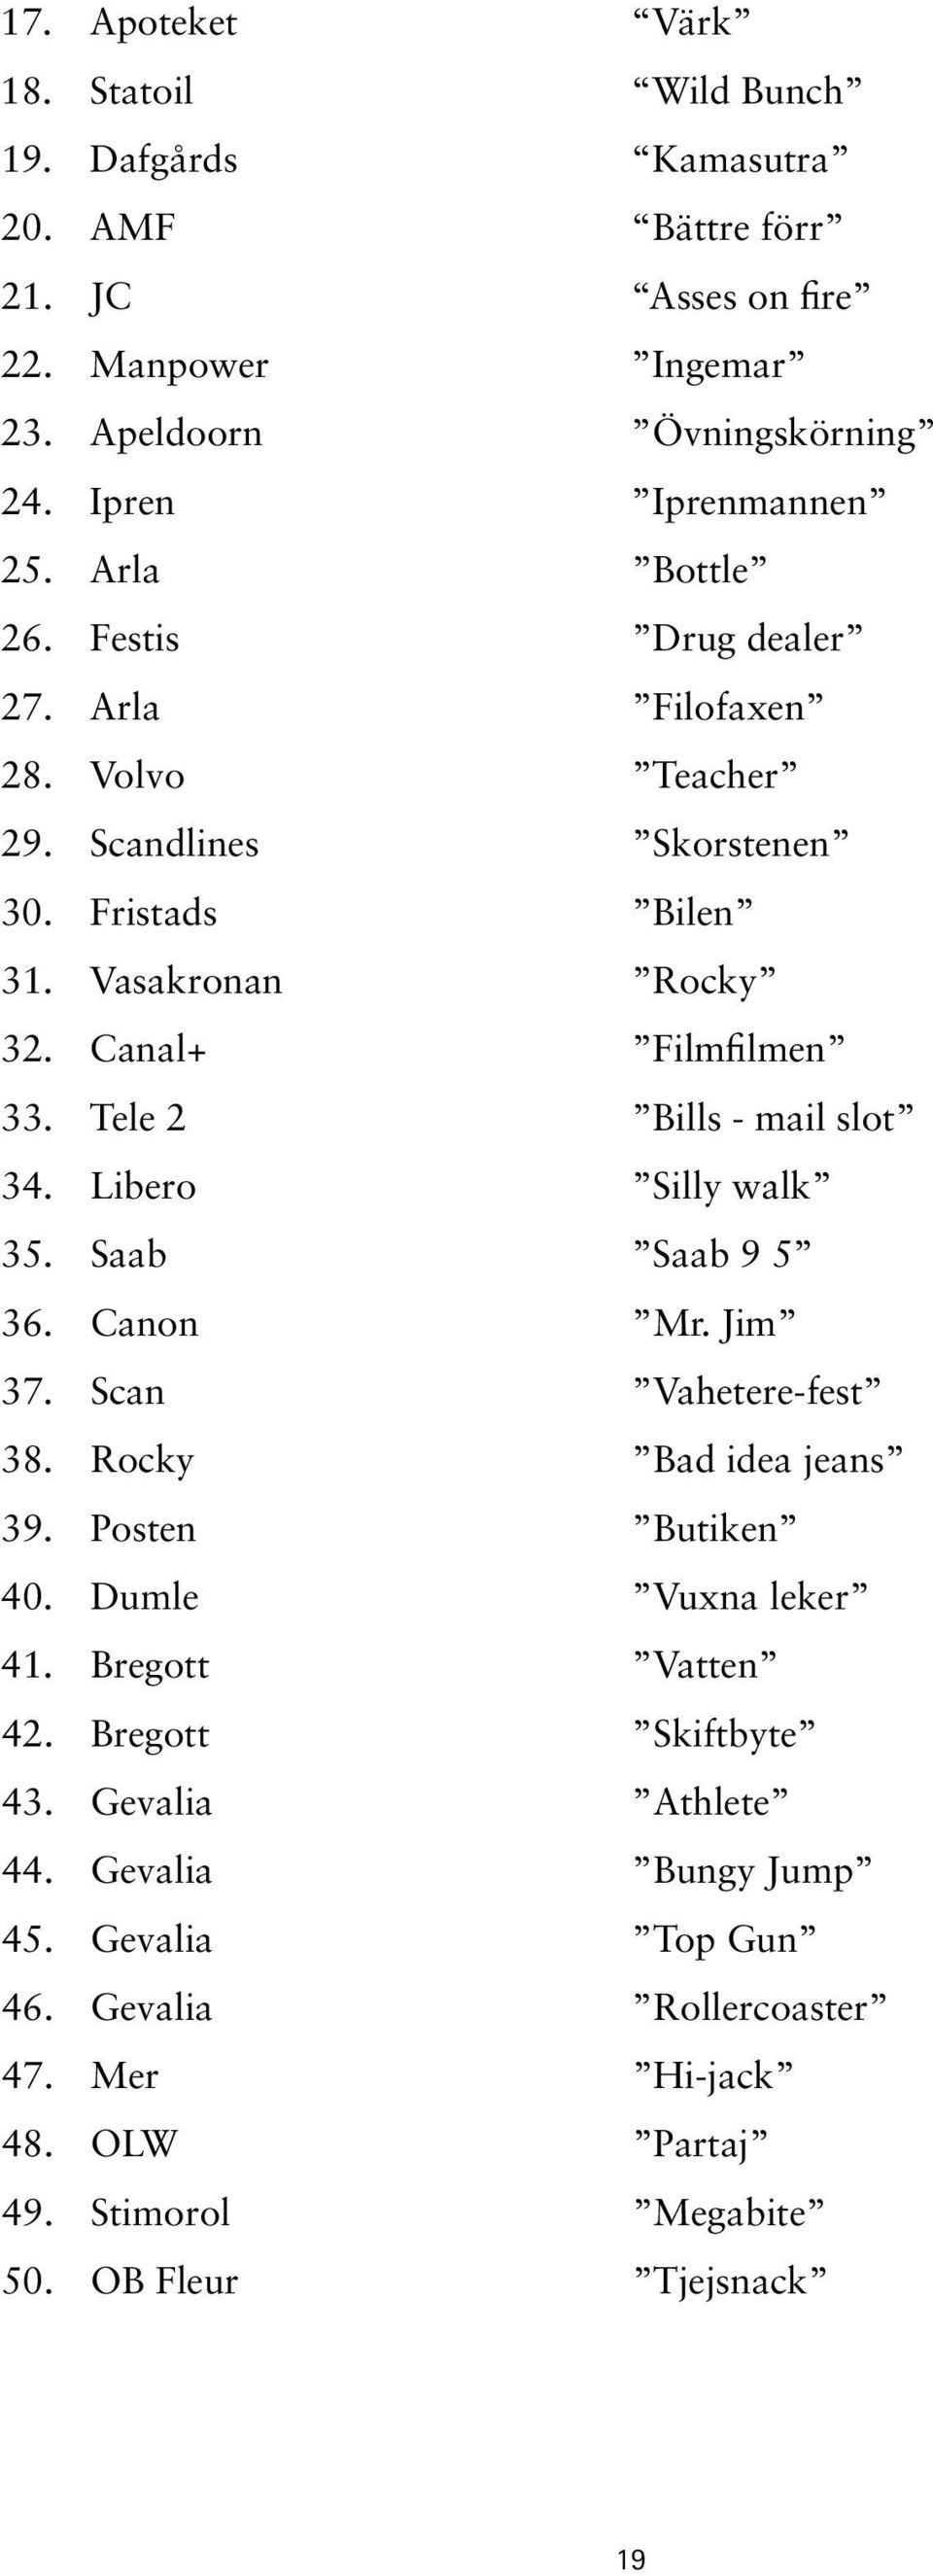 Tele 2 Bills - mail slot 34. Libero Silly walk 35. Saab Saab 9 5 36. Canon Mr. Jim 37. Scan Vahetere-fest 38. Rocky Bad idea jeans 39. Posten Butiken 40. Dumle Vuxna leker 41.